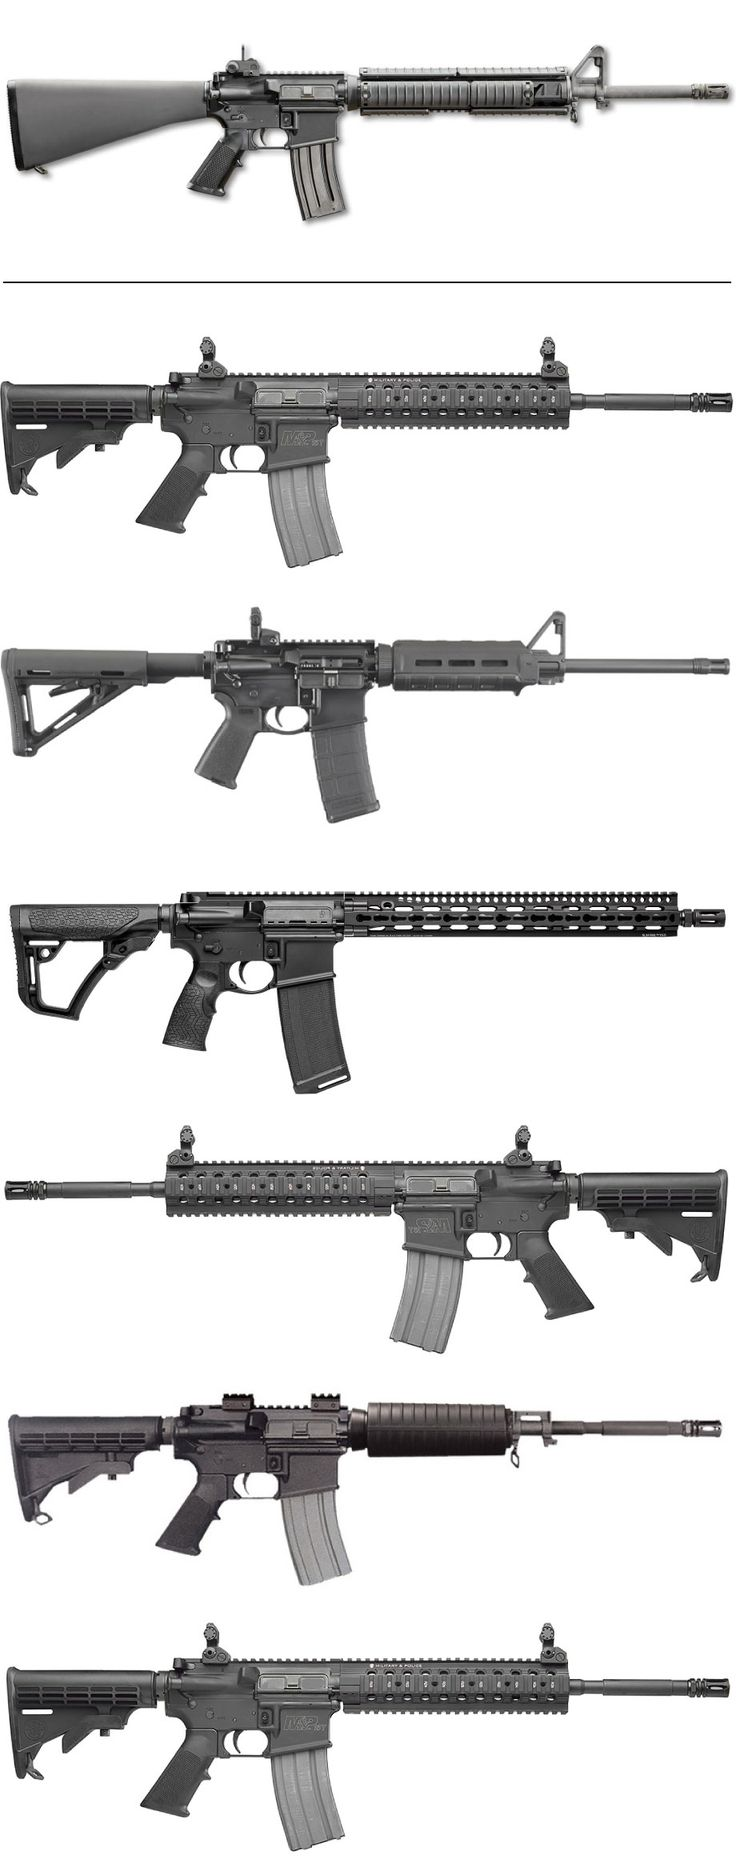 With AR-15s, Mass Shooters Attack With the Rifle Firepower Typically Used by Infantry Troops - The New York Times